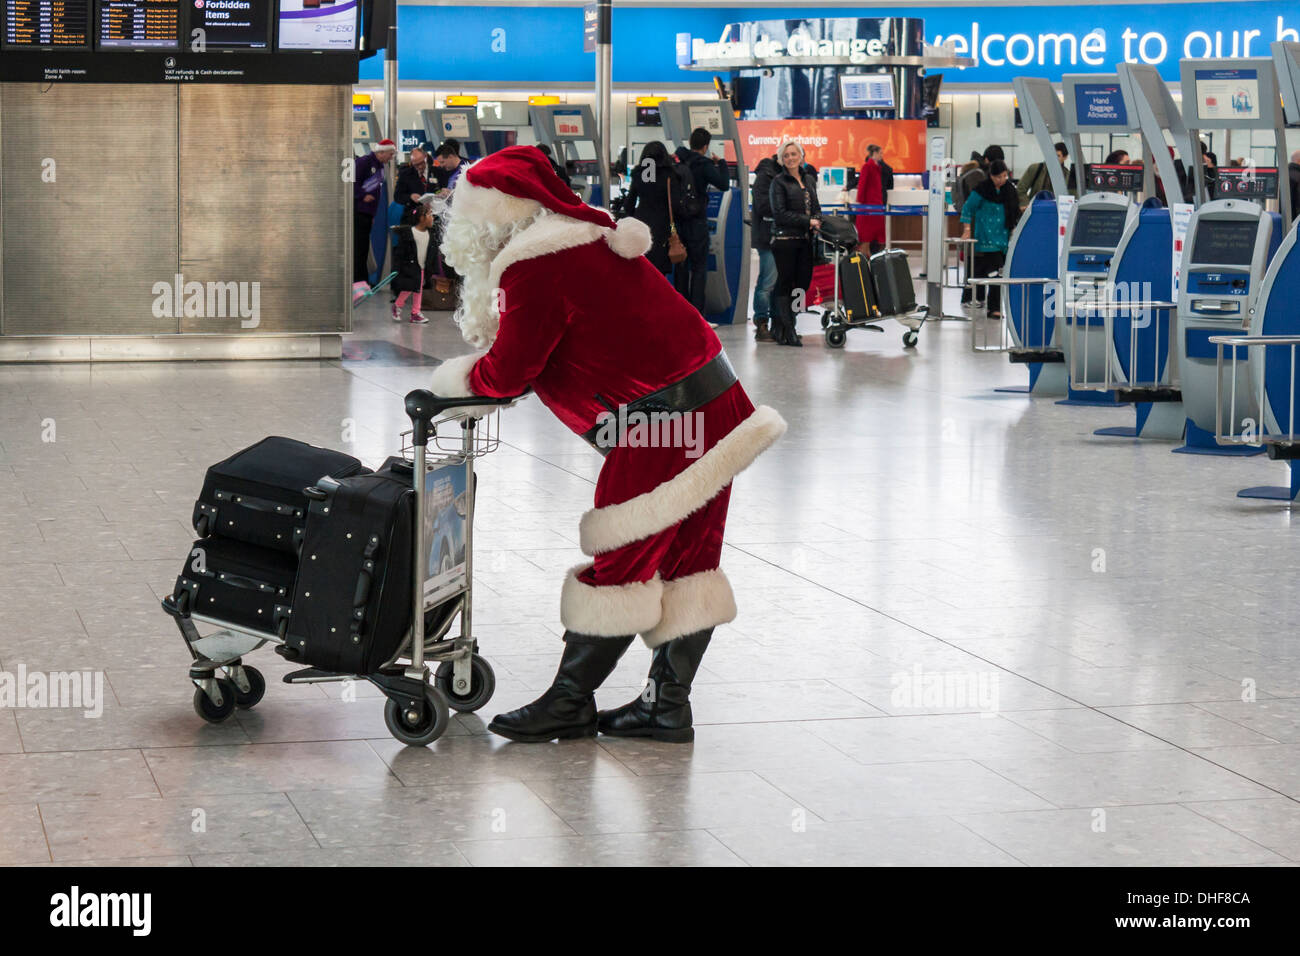 Le Père Noël attend à T5 L'aéroport de Heathrow, Londres. Retards de voyage Noël concept. Photo Stock